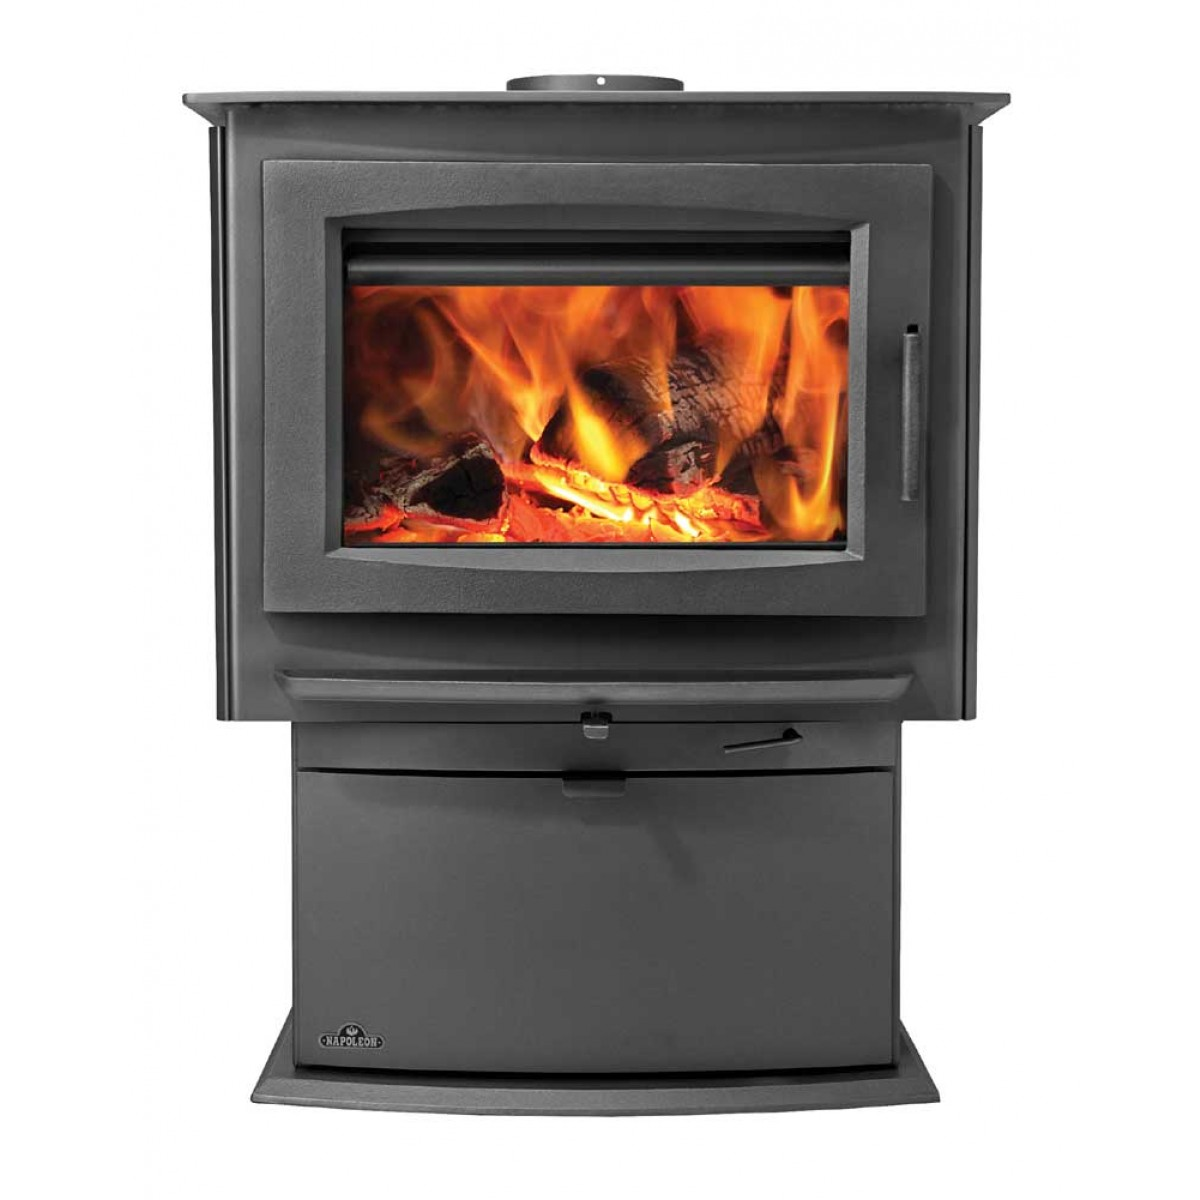 Napoleon s series wood burning stove at ibuyfireplaces Wood burning stoves